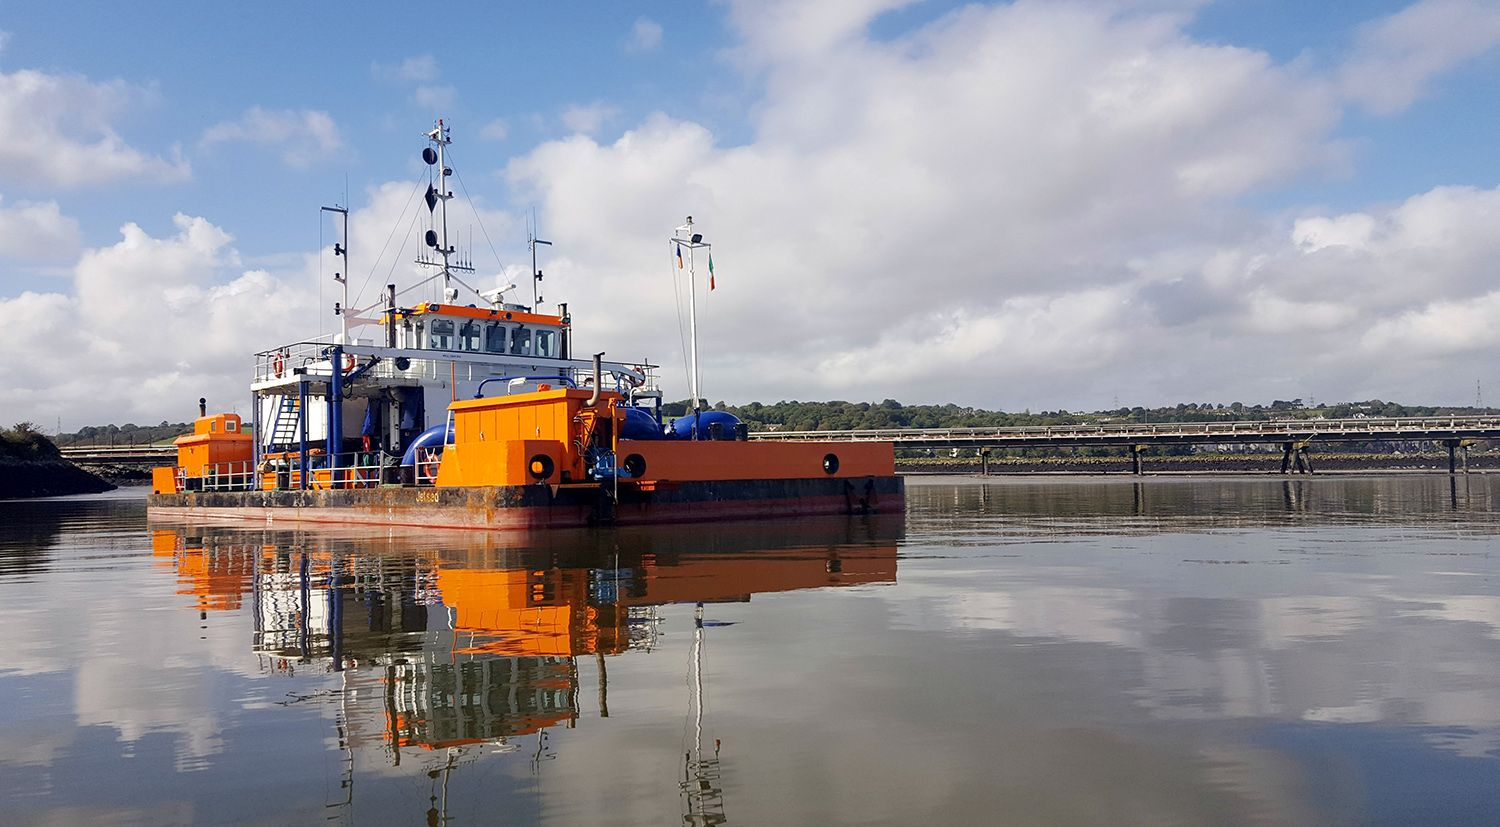 Port of Rotterdam trials water injection dredging